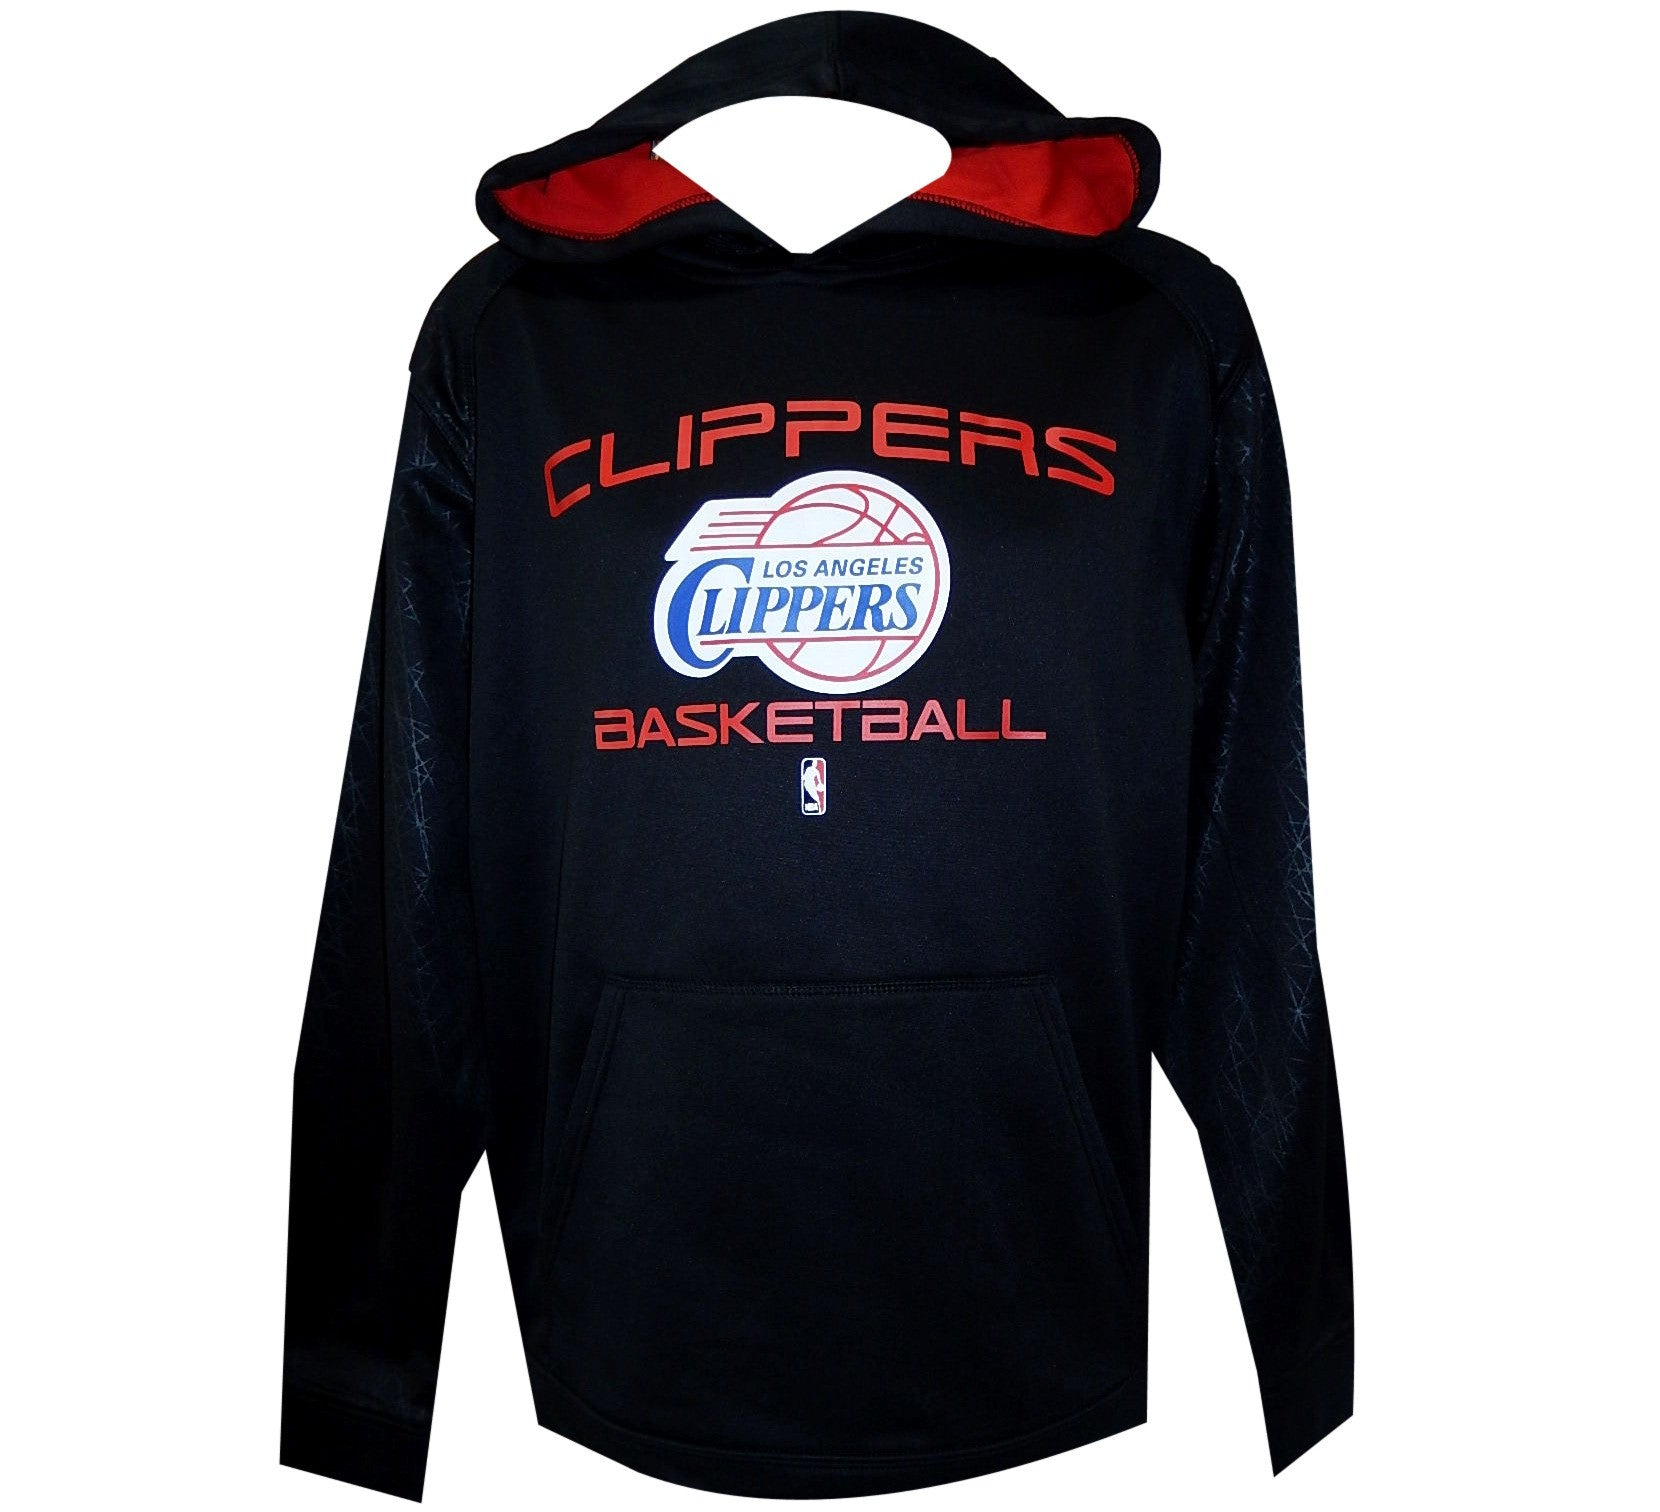 Clippers Retro NBA Hoodie - And Still